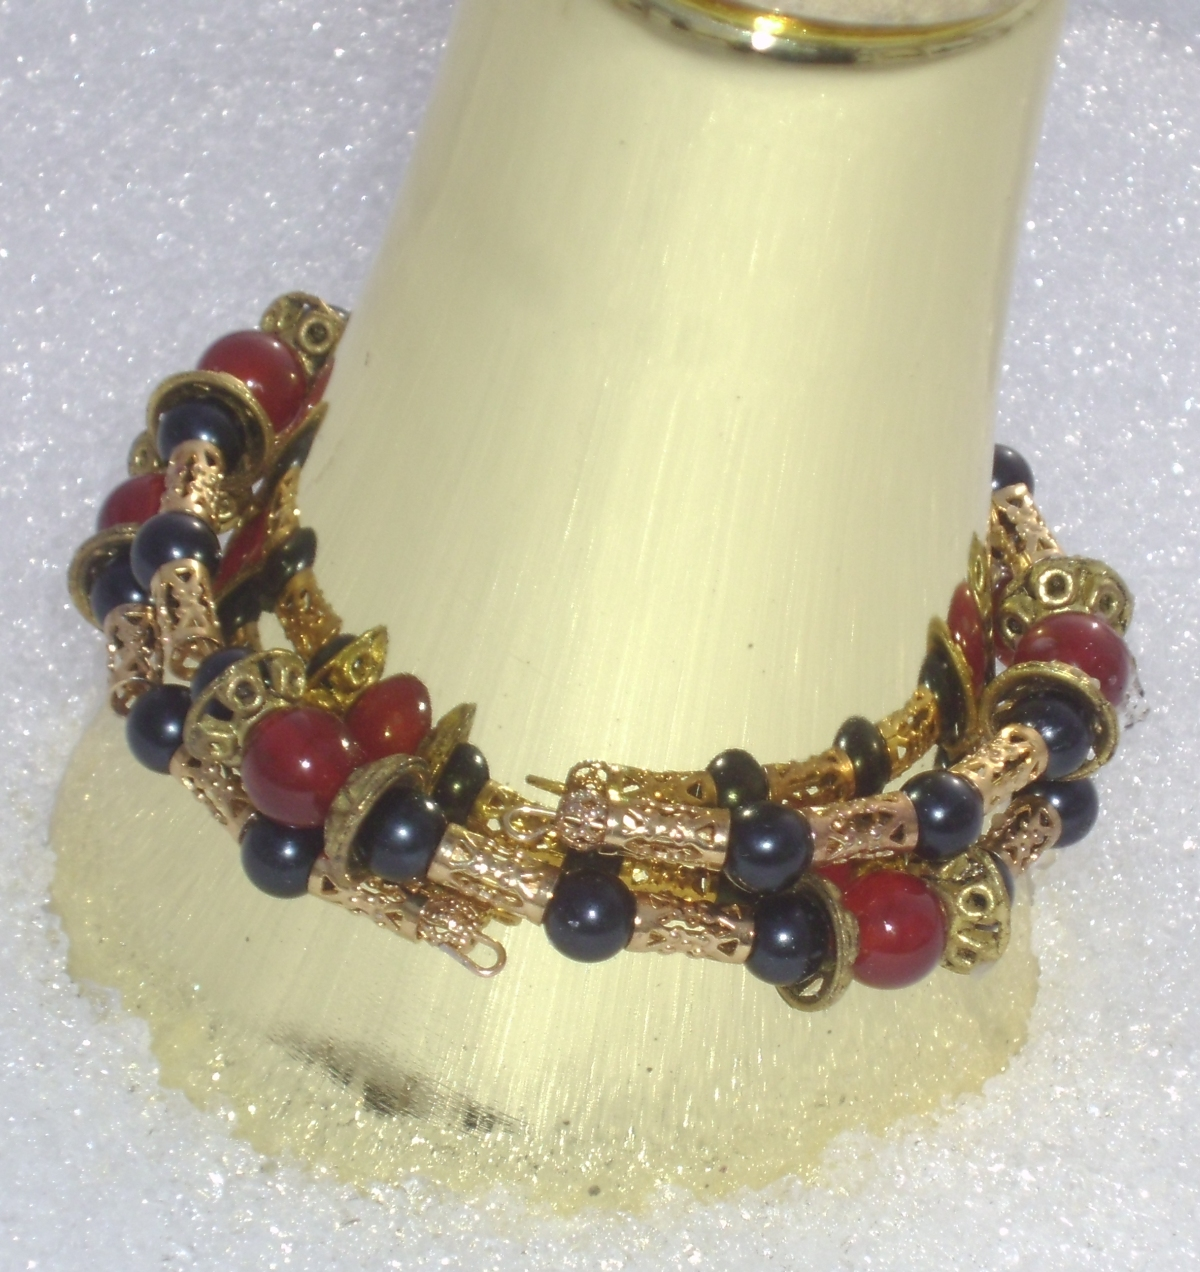 Carnelian, Black, and Gold Coil Bracelet Closeup 2 by Windthin